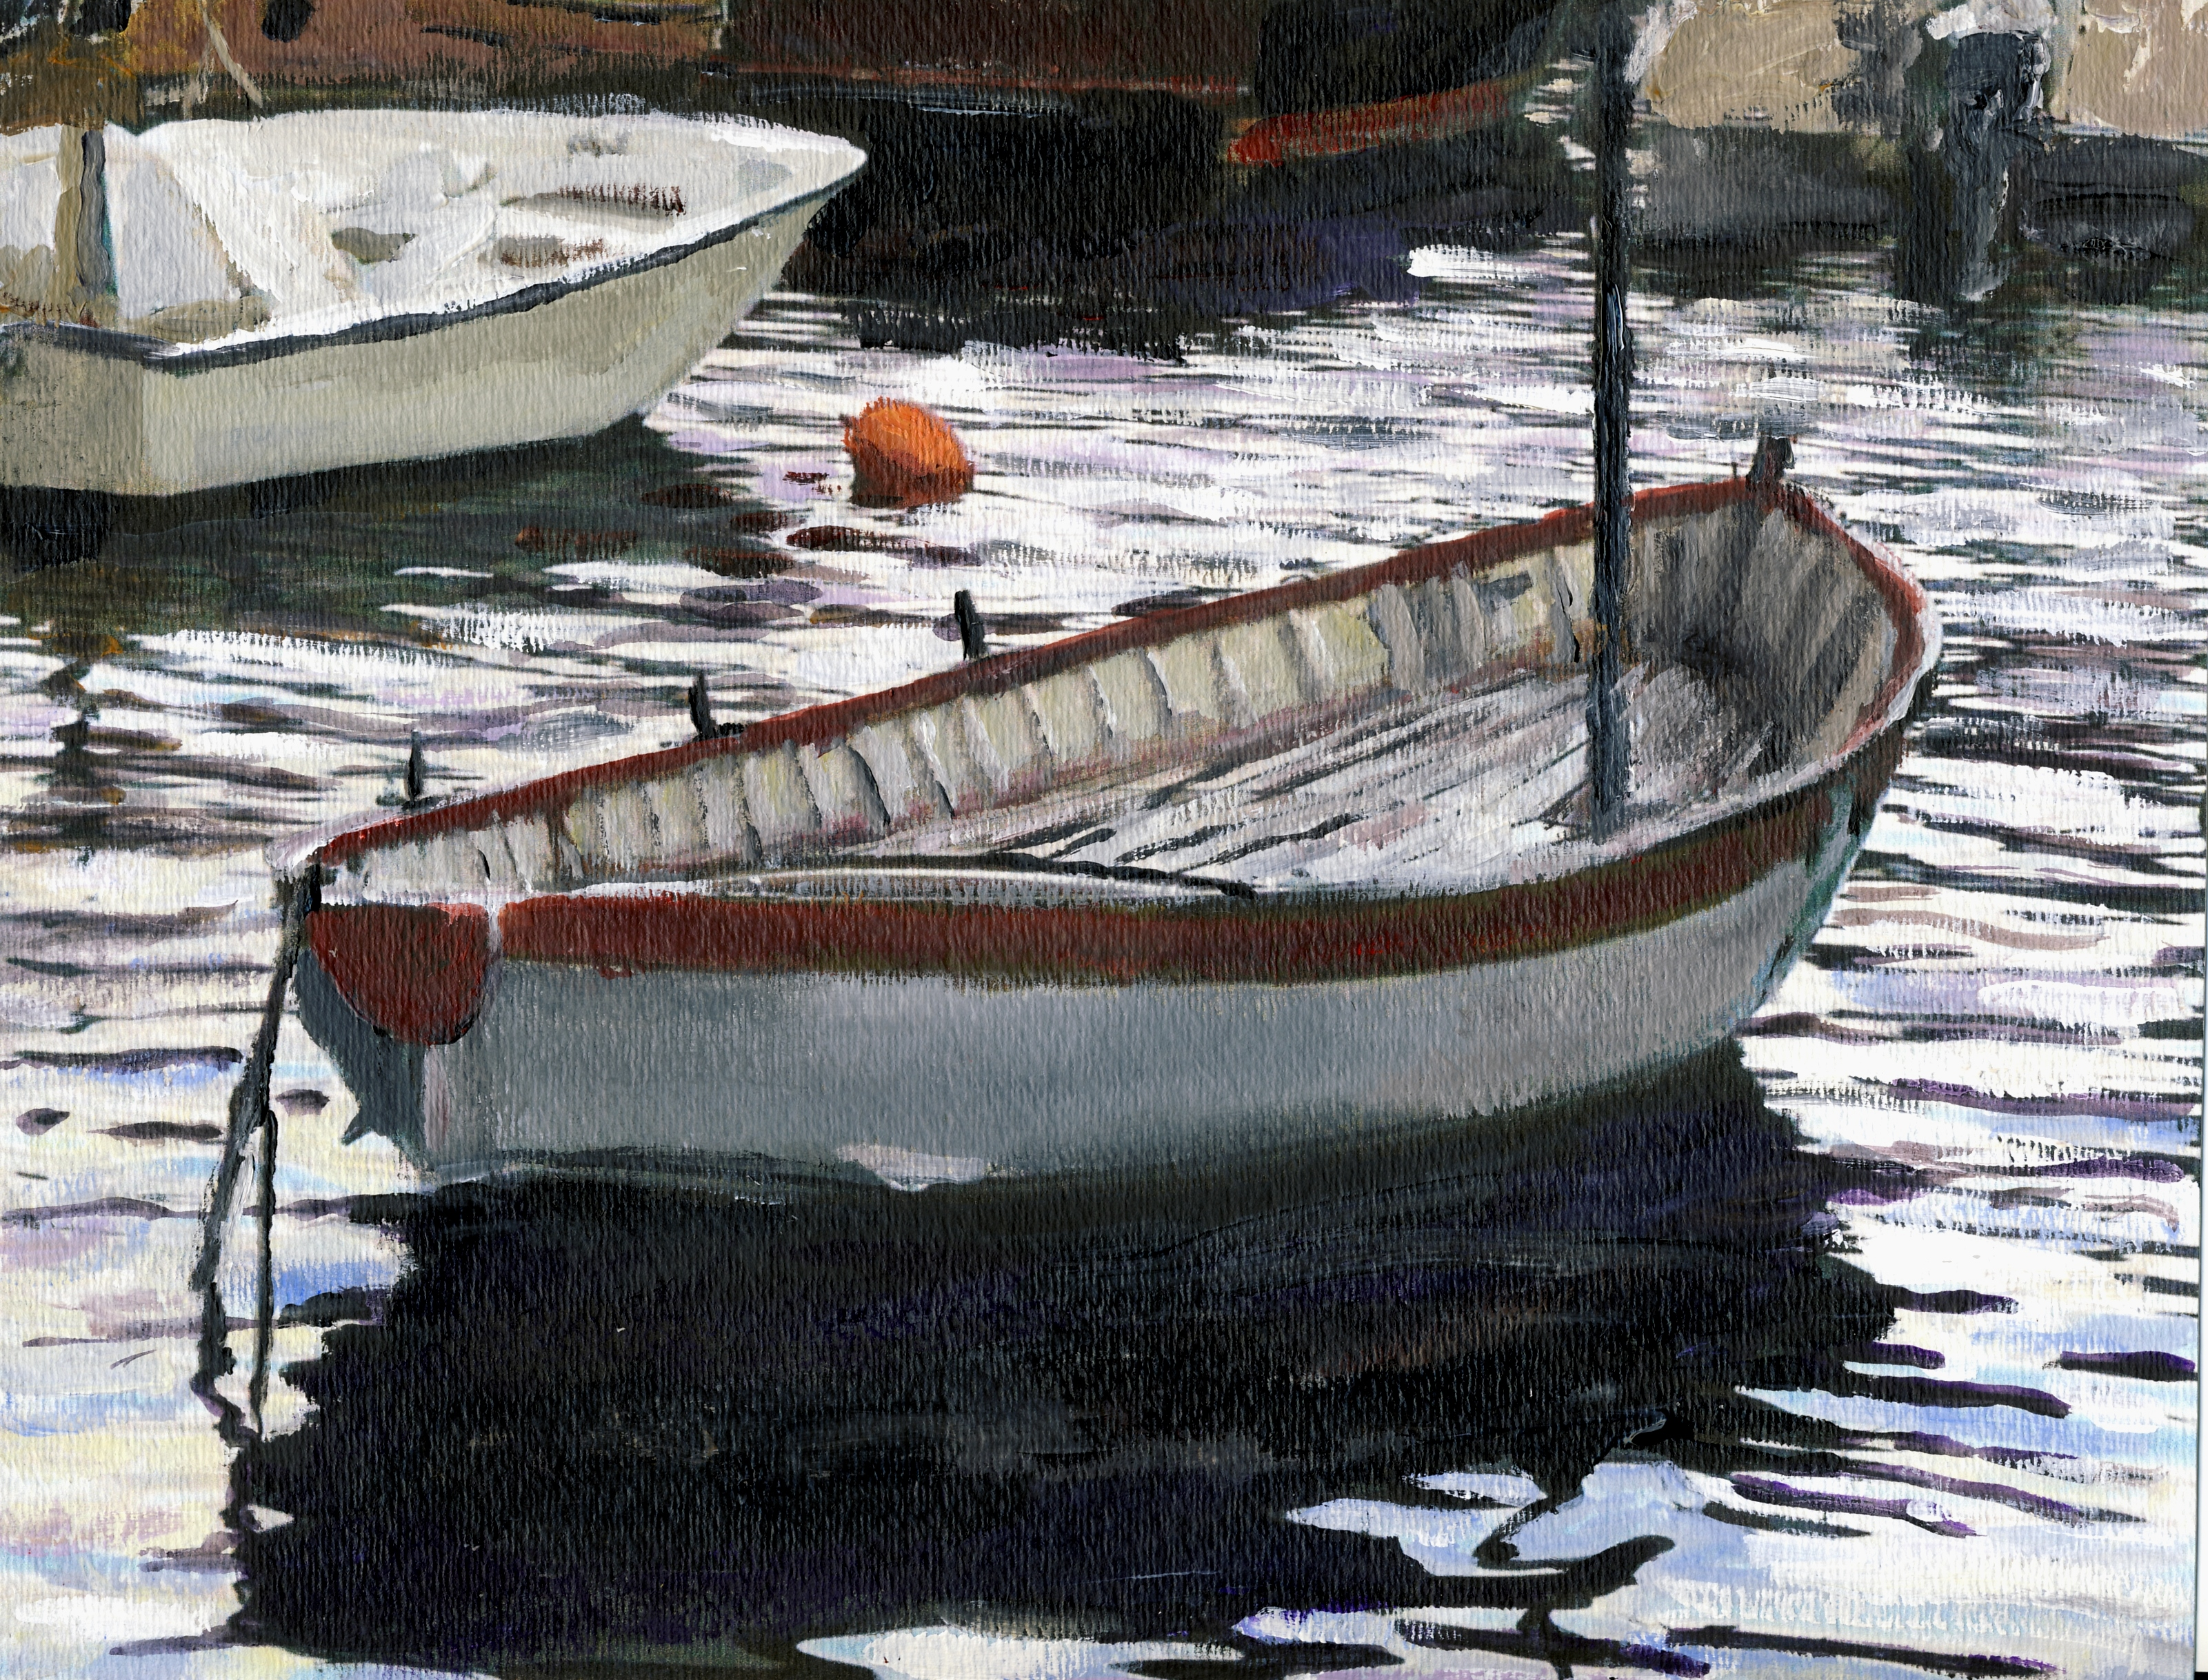 Randy Sprout, Peggys Cove Dingy Haul Out, 2012, Original Painting Acrylic, size_width{ing_Fish_Boat_Positano-1353169379.jpg} X 6 inches